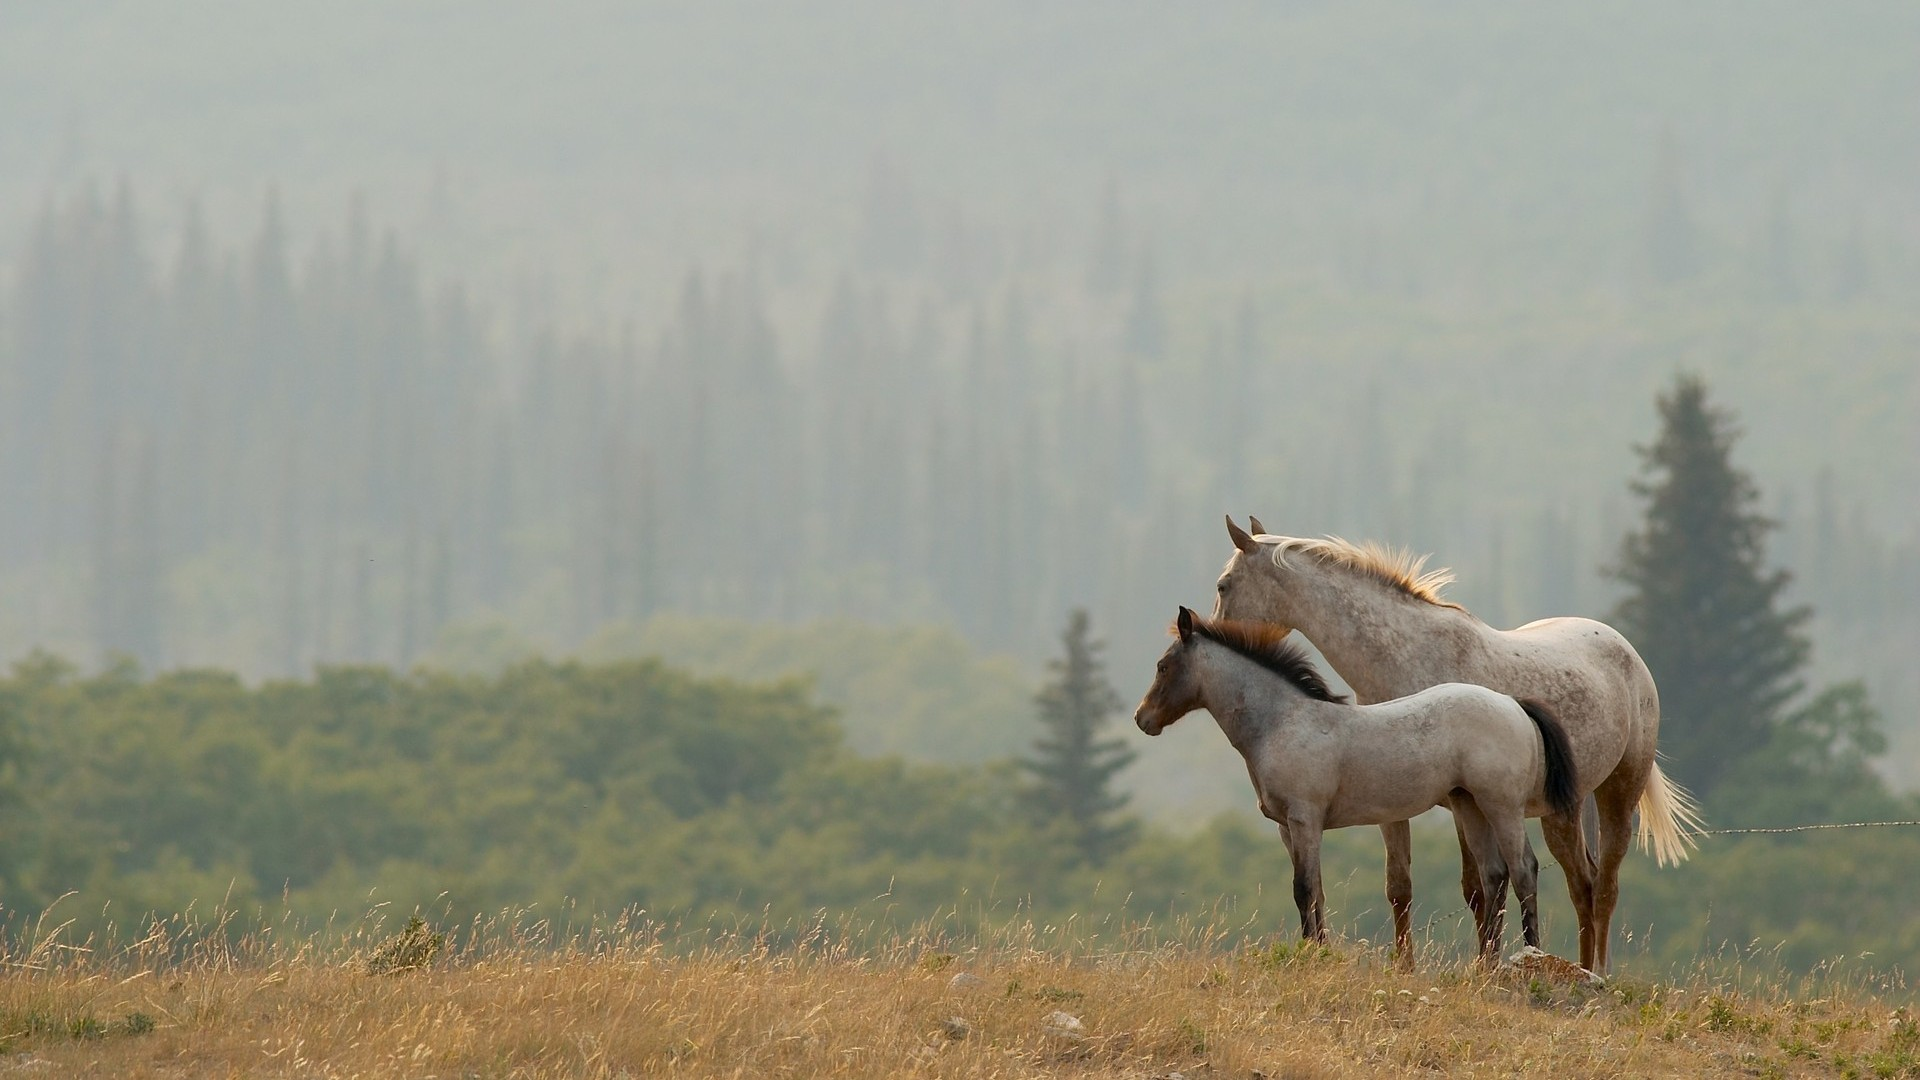 horse wallpaper awesome pair - photo #39